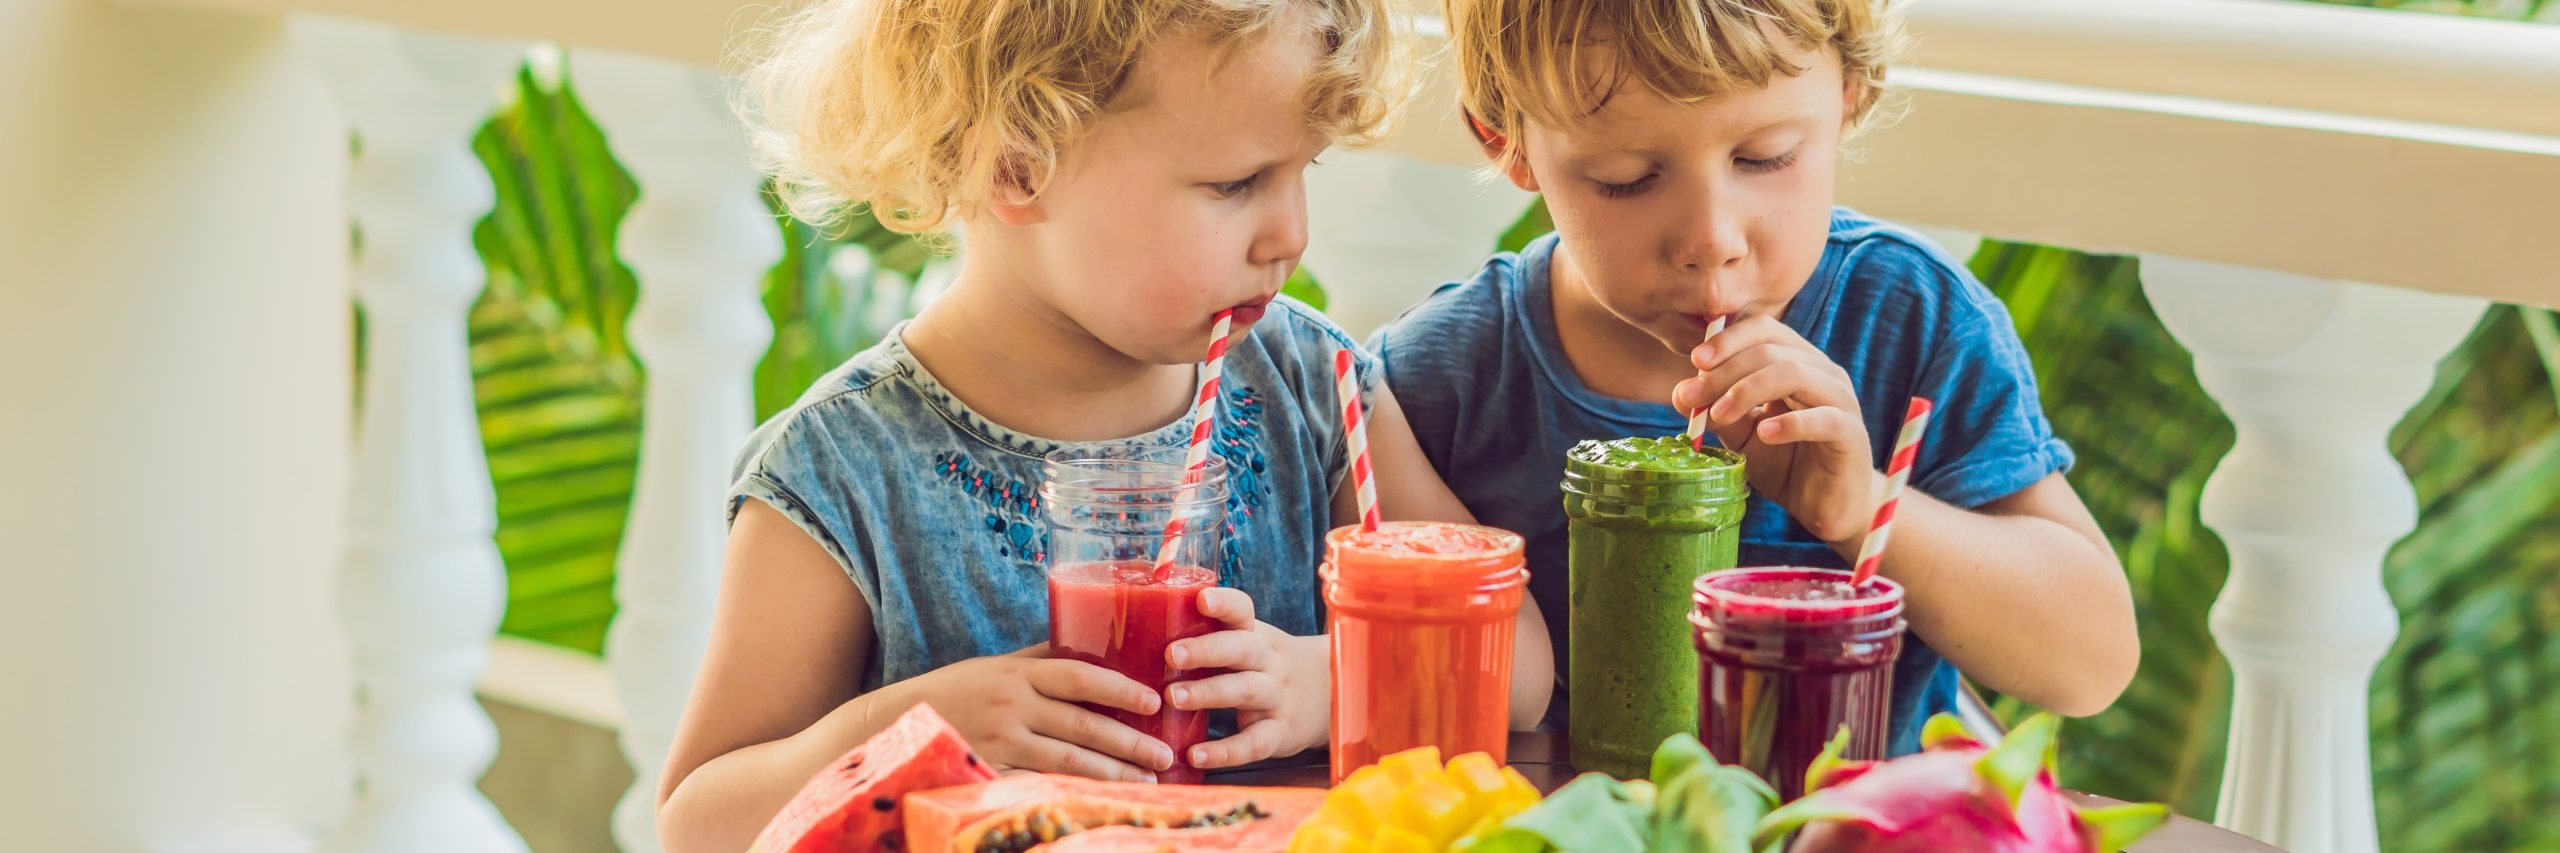 Children drink colorful healthy smoothies. Watermelon, papaya, mango, spinach and dragon fruit. Smoothies, juices, beverages, drinks variety with fresh fruits on a wooden table. BANNER, long format